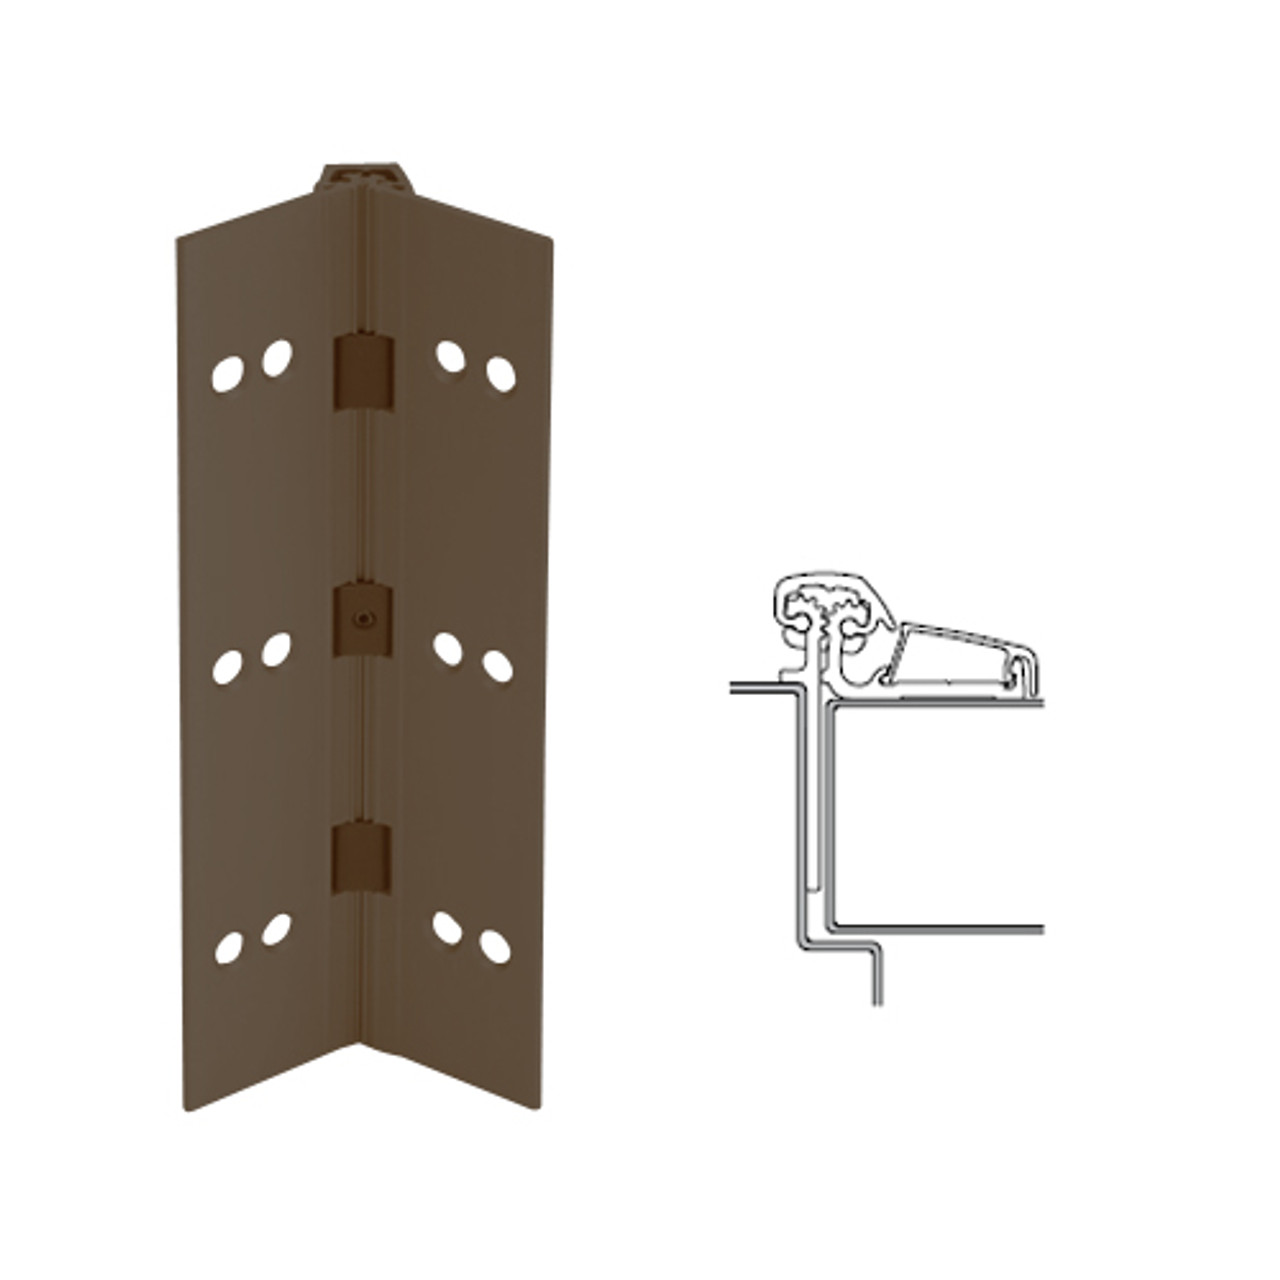 053XY-313AN-120-WD IVES Adjustable Half Surface Continuous Geared Hinges with Wood Screws in Dark Bronze Anodized